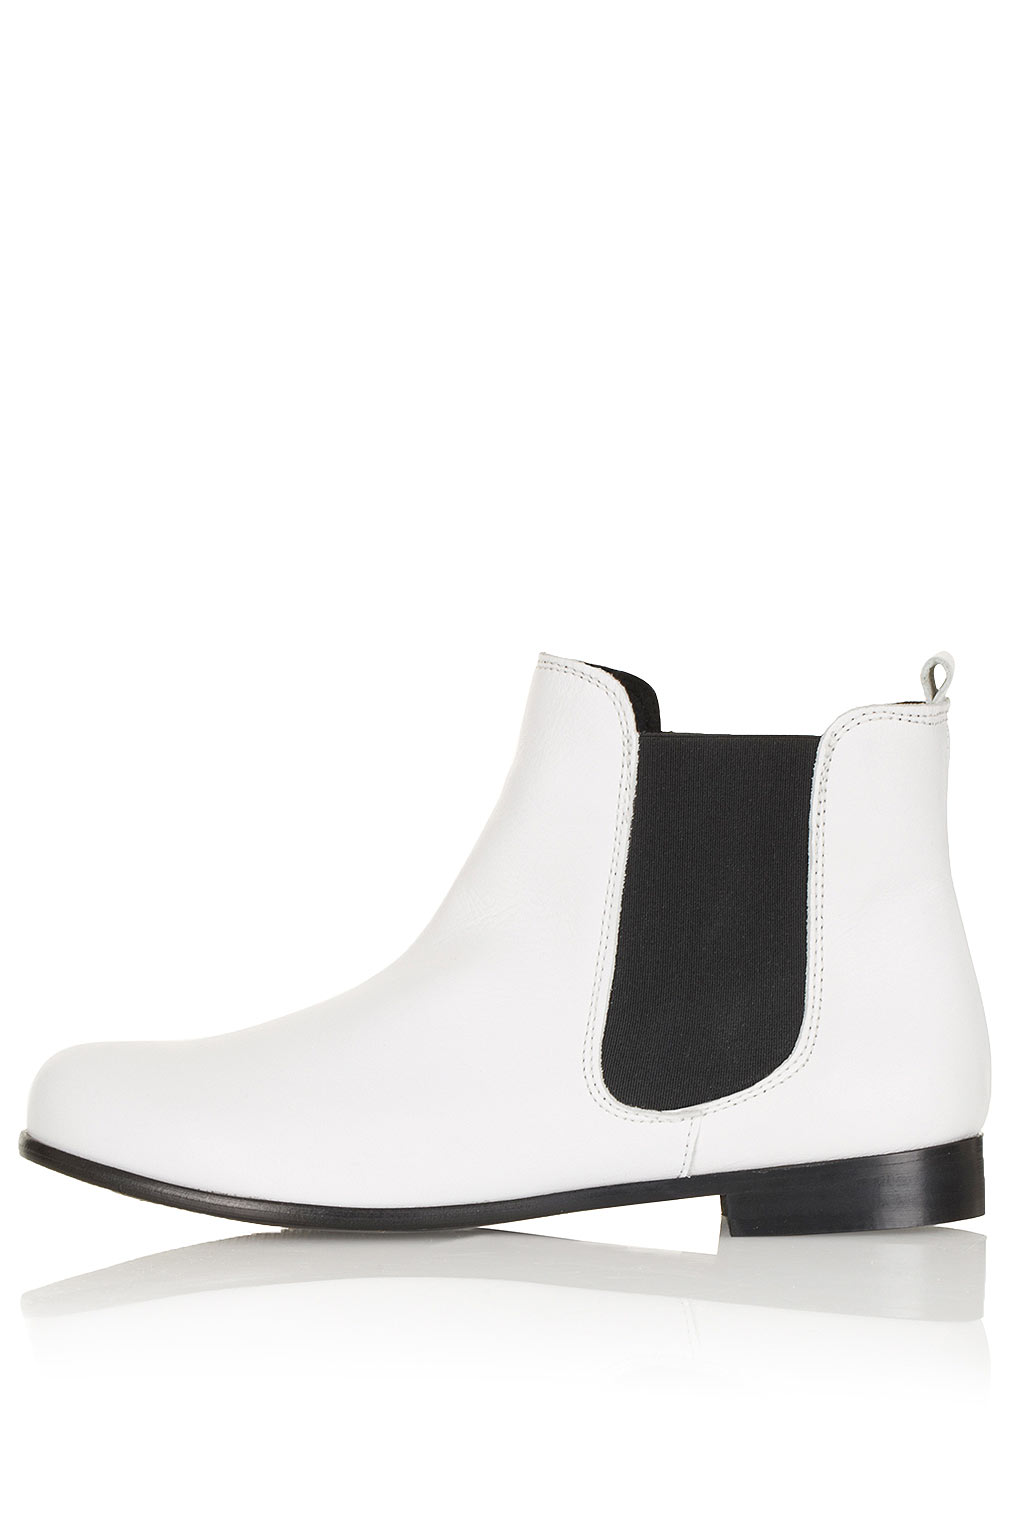 TOPSHOP Abe2 Ultimate Chelsea Boots in